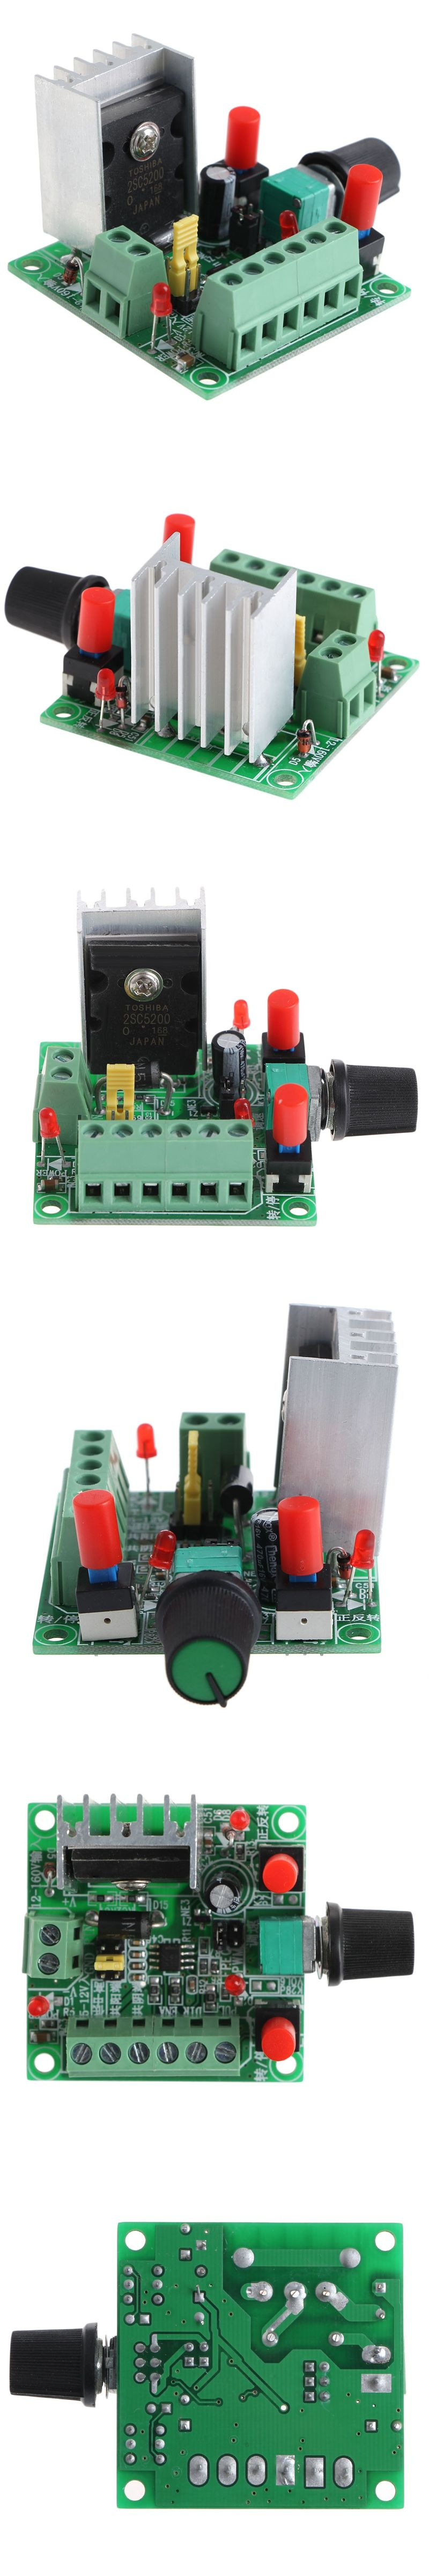 1pcs Stepper Motor Driver Speed Board Controller Pulse Signal Picture Of Finish Generator Circuit Module